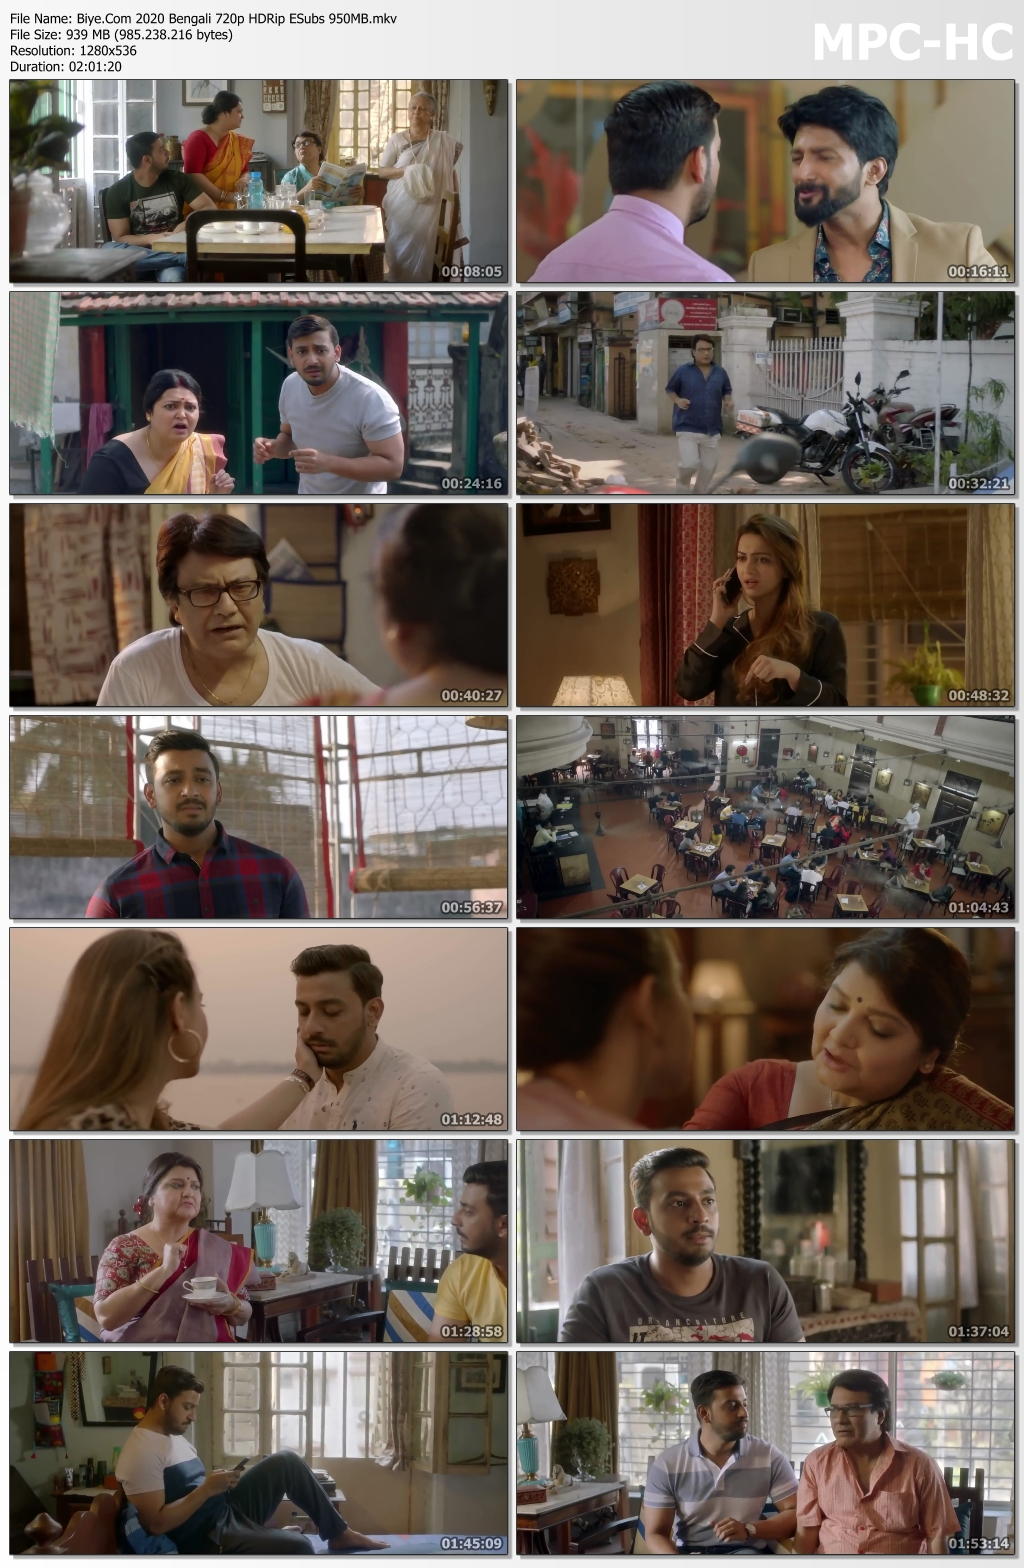 Biye-Com-2020-Bengali-720p-HDRip-ESubs-950-MB-mkv-thumbs